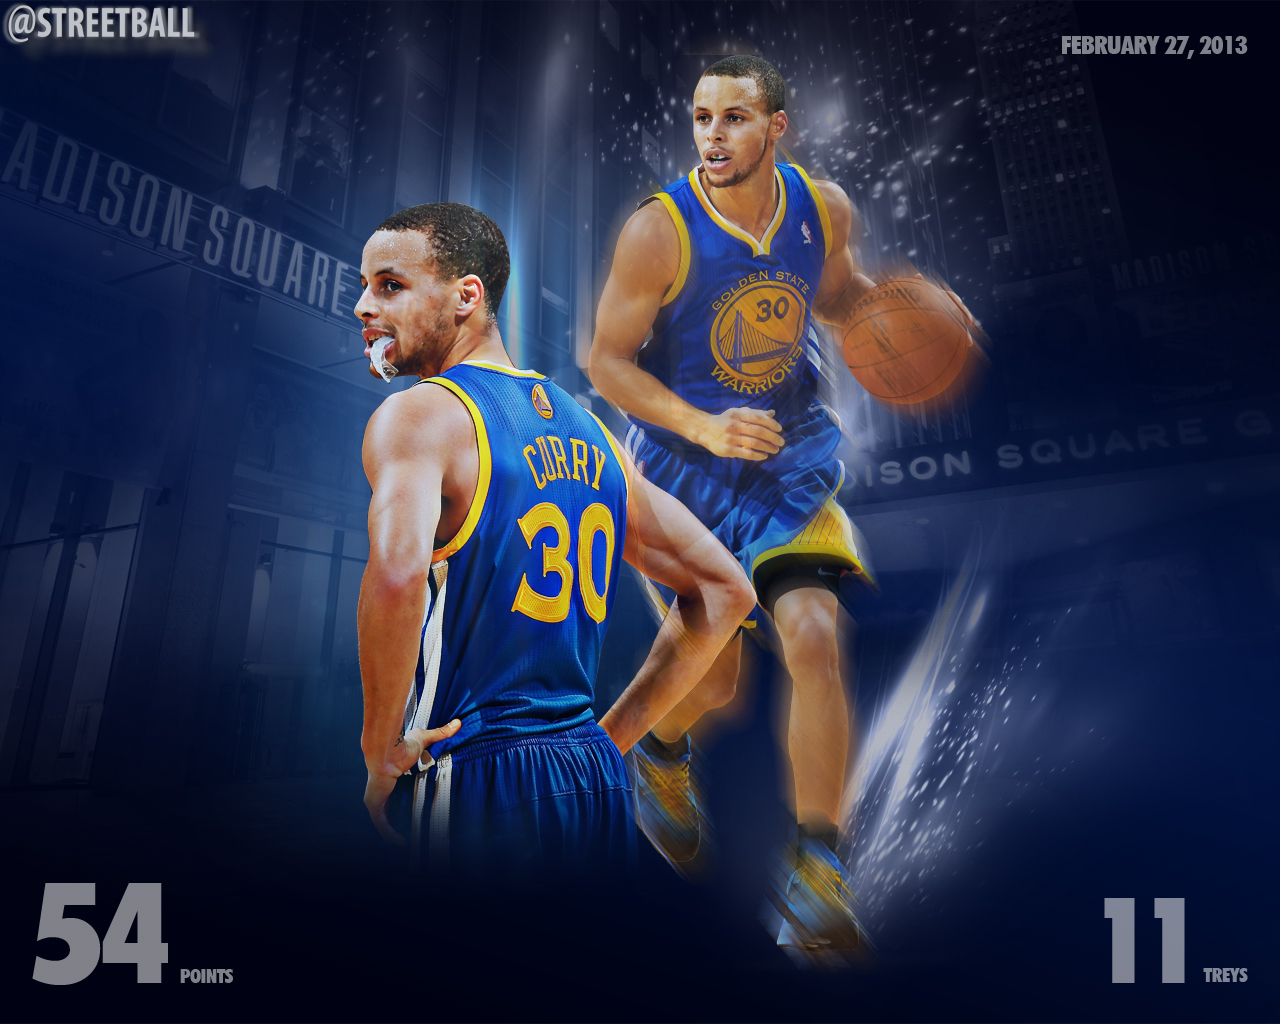 FunMozar Stephen Curry Wallpaper 1280x1024